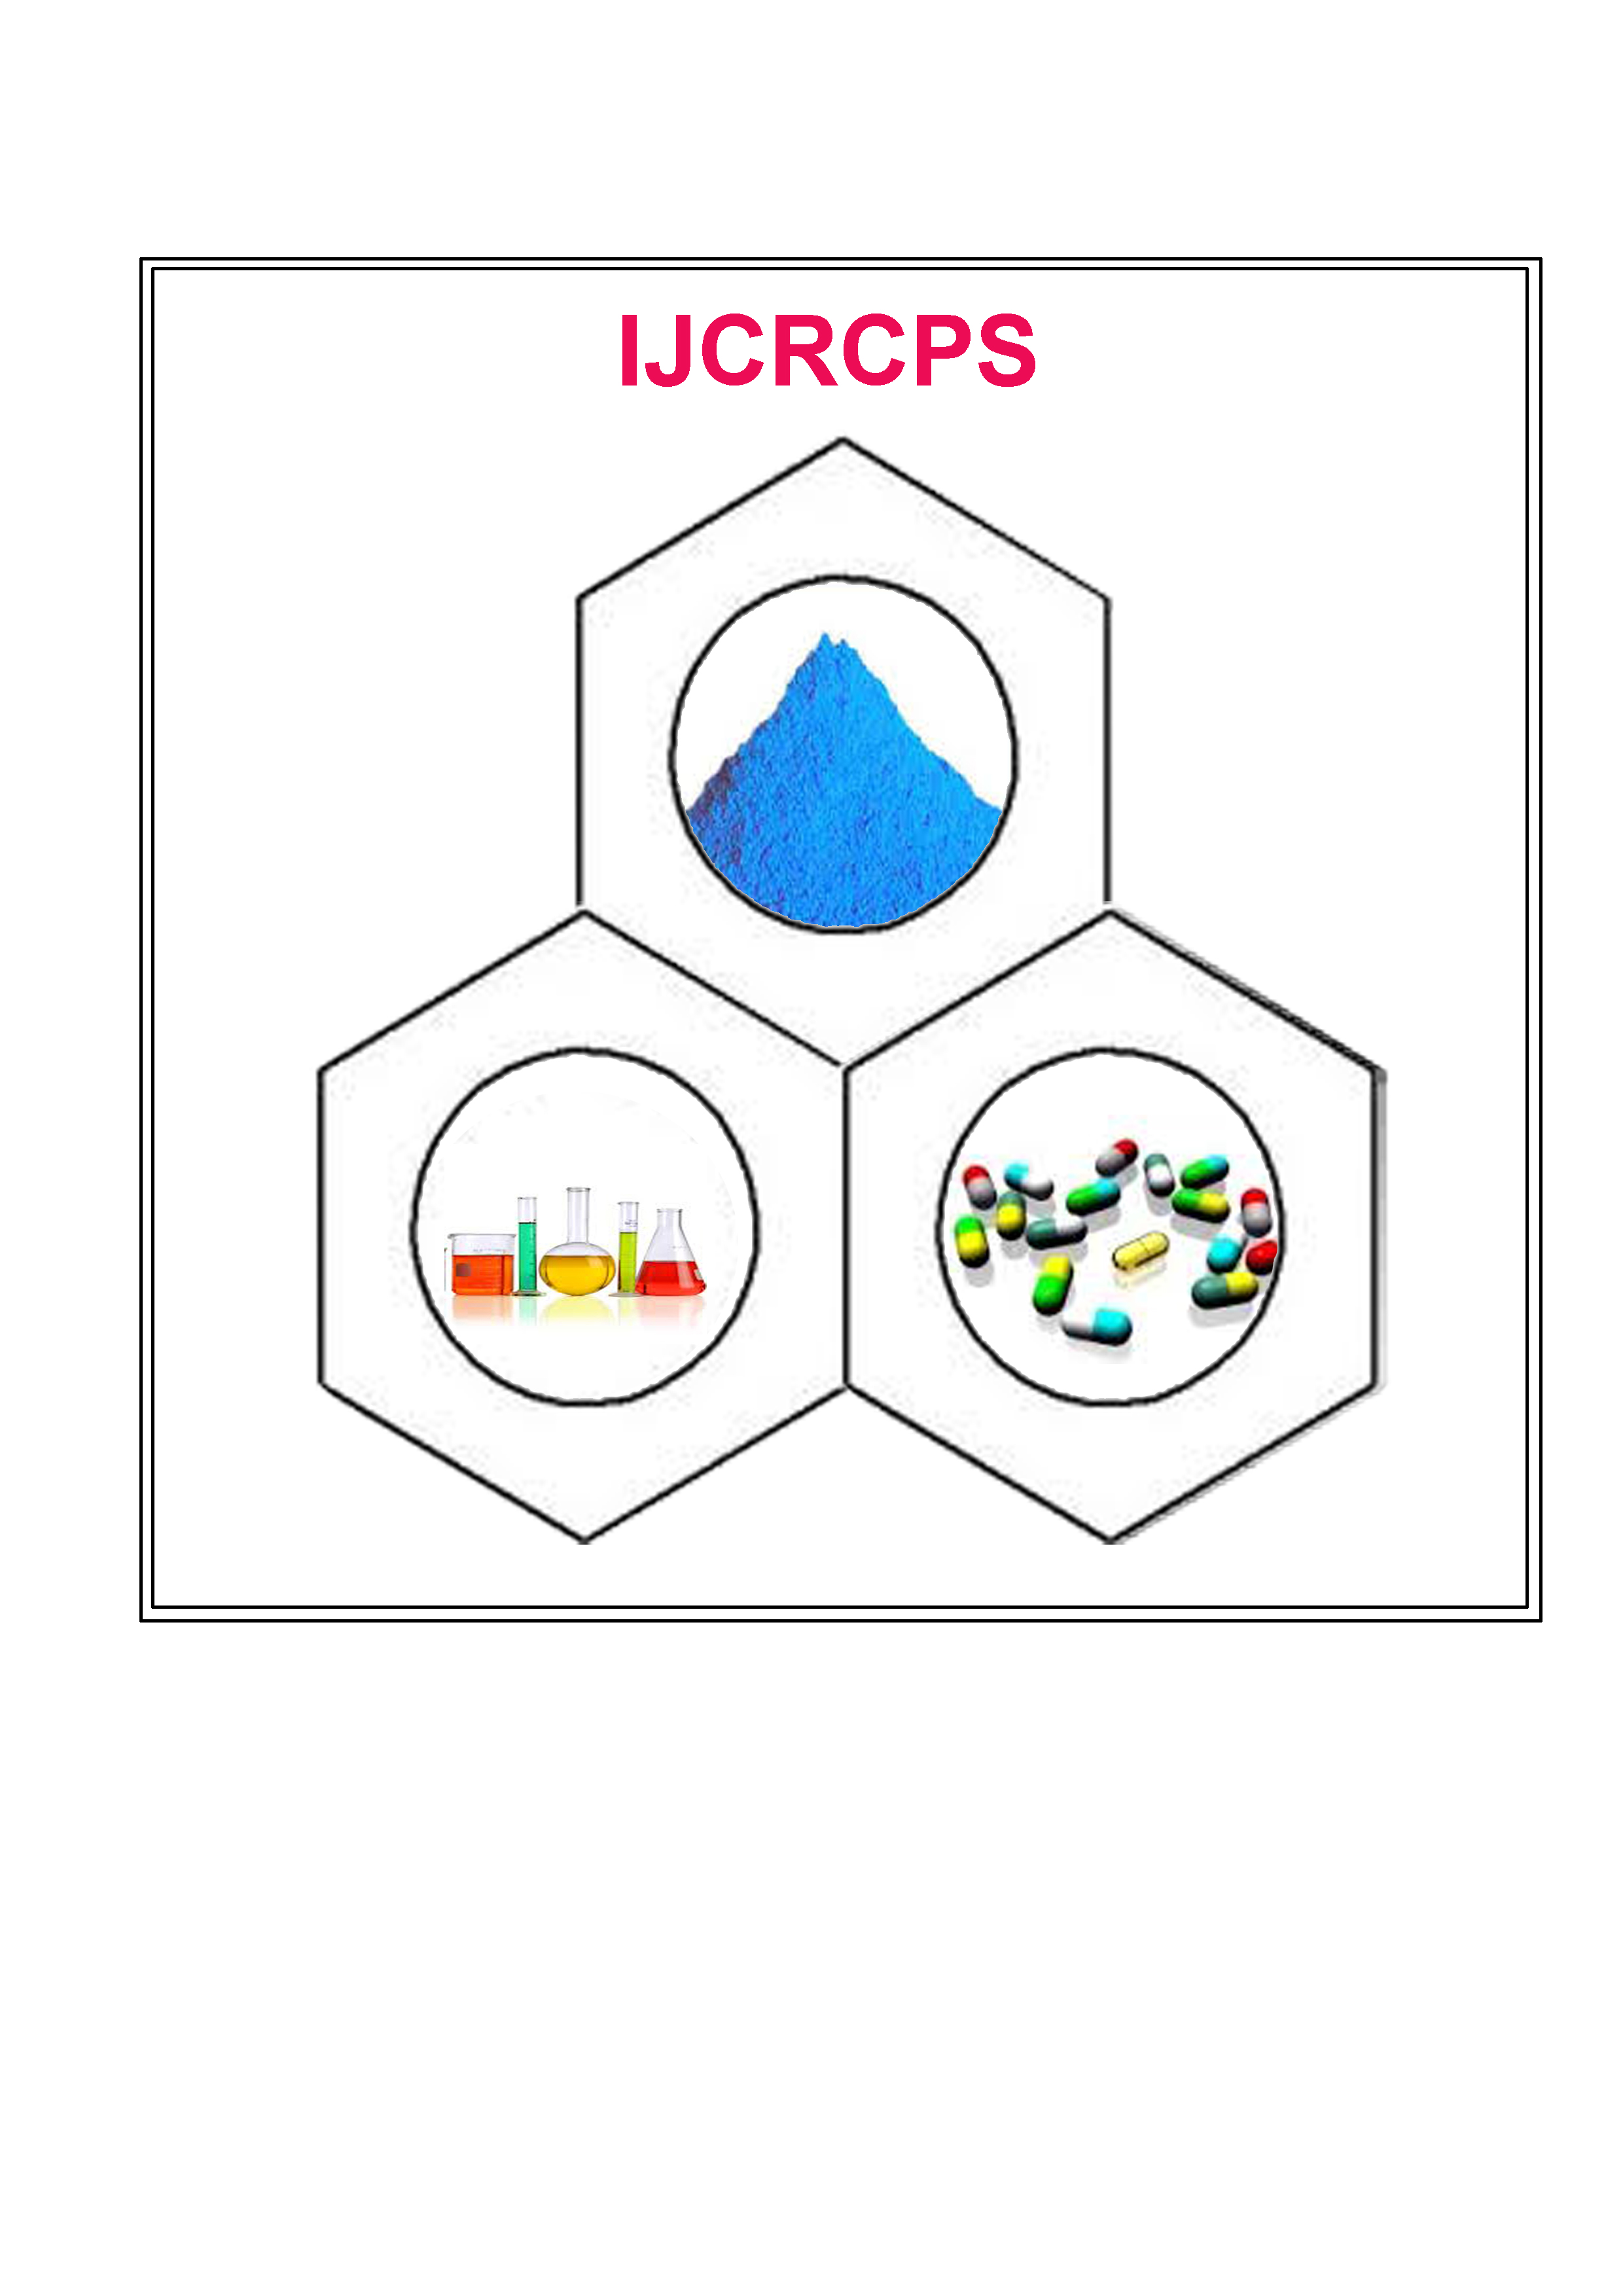 International Journal of Current Research in Chemistry and Pharmaceutical Sciences (IJCRCPS)